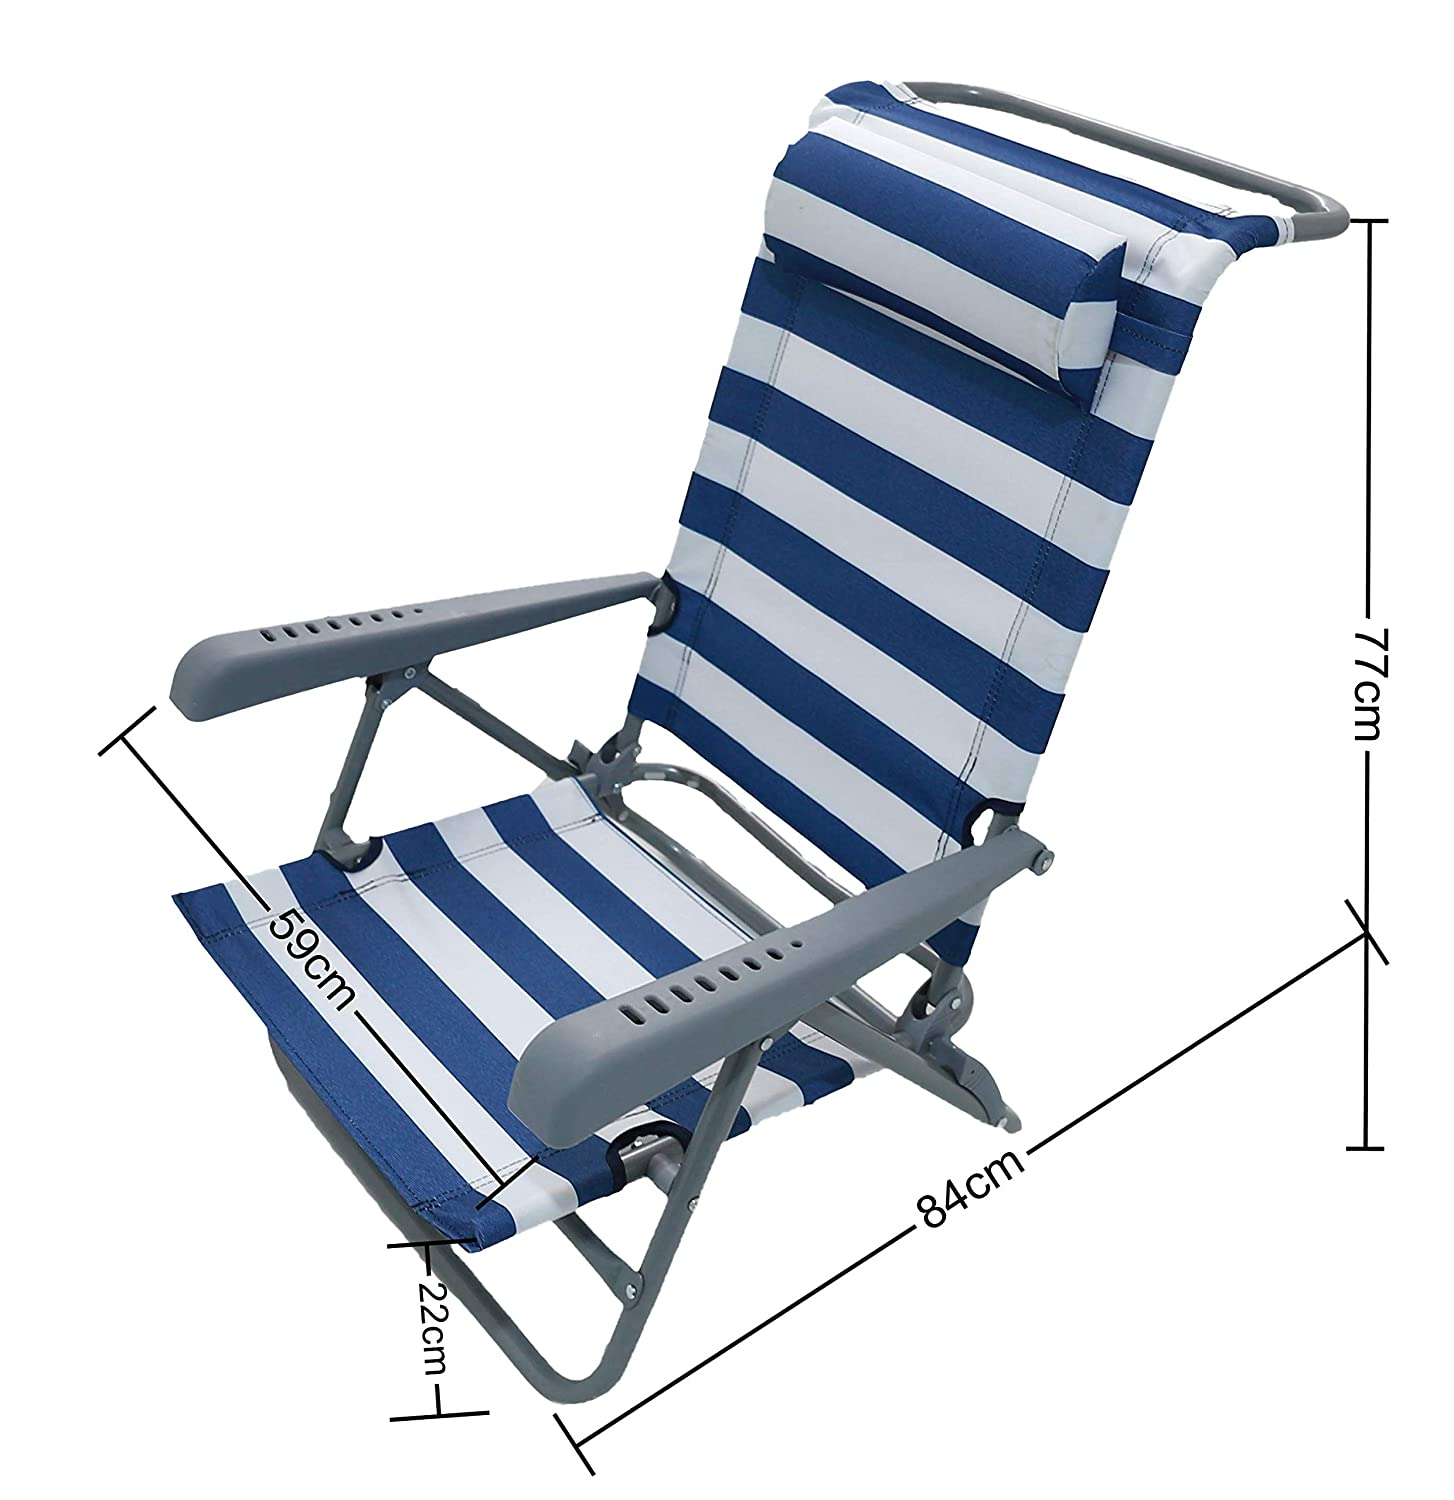 HOMECALL Beach folding Chair with LOUNGER FUNCTION and pillow,7 level position adjustment bottle opener